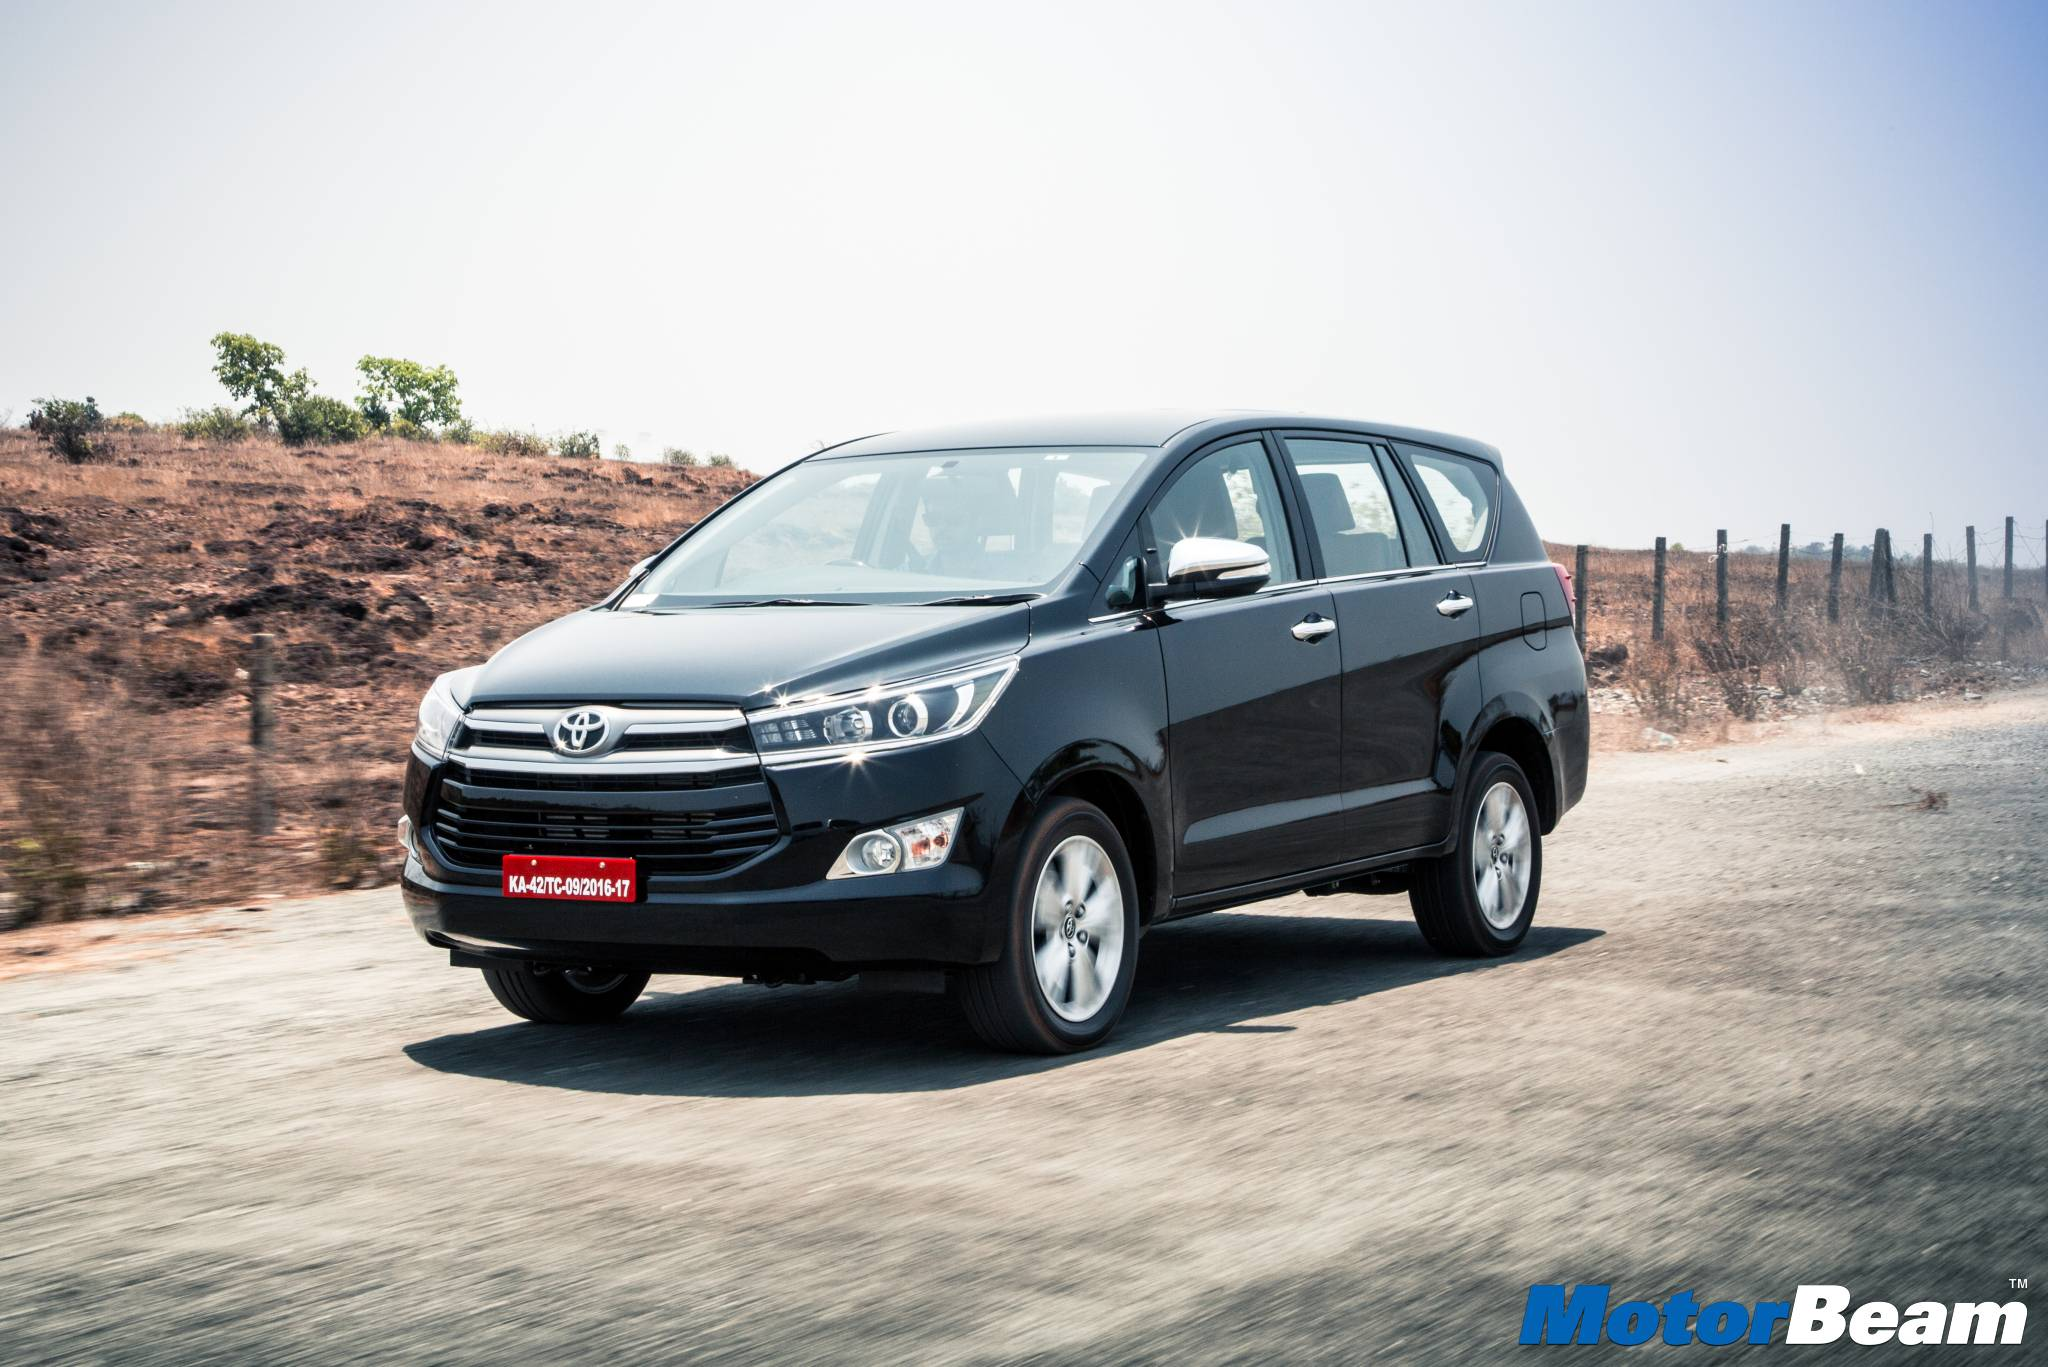 Toyota Innova Crysta Is Top Selling Car In India By Value Wiring Diagram Road Test